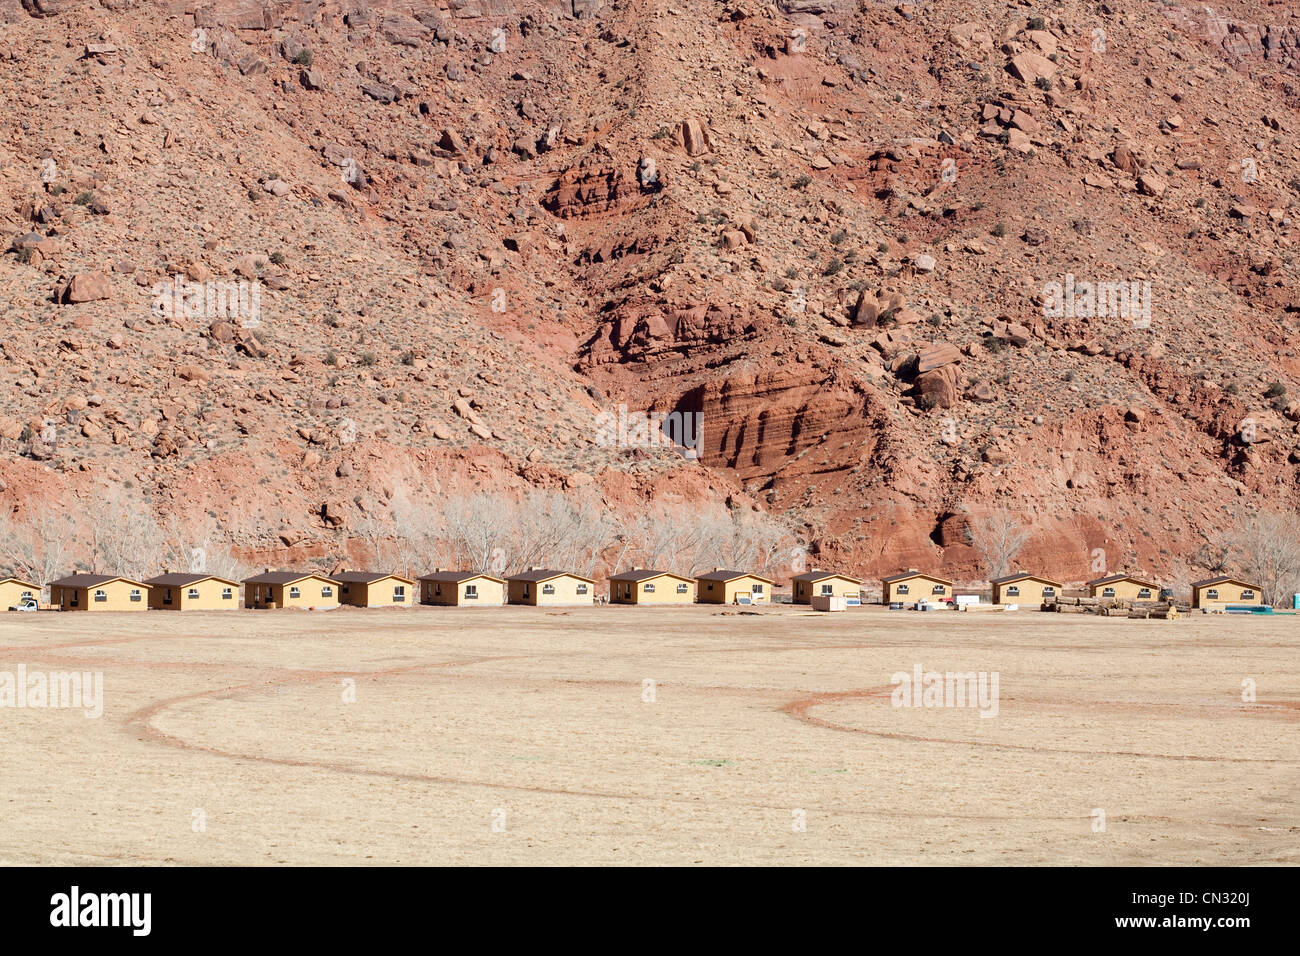 Row of huts by canyon, Moab, Utah, USA - Stock Image